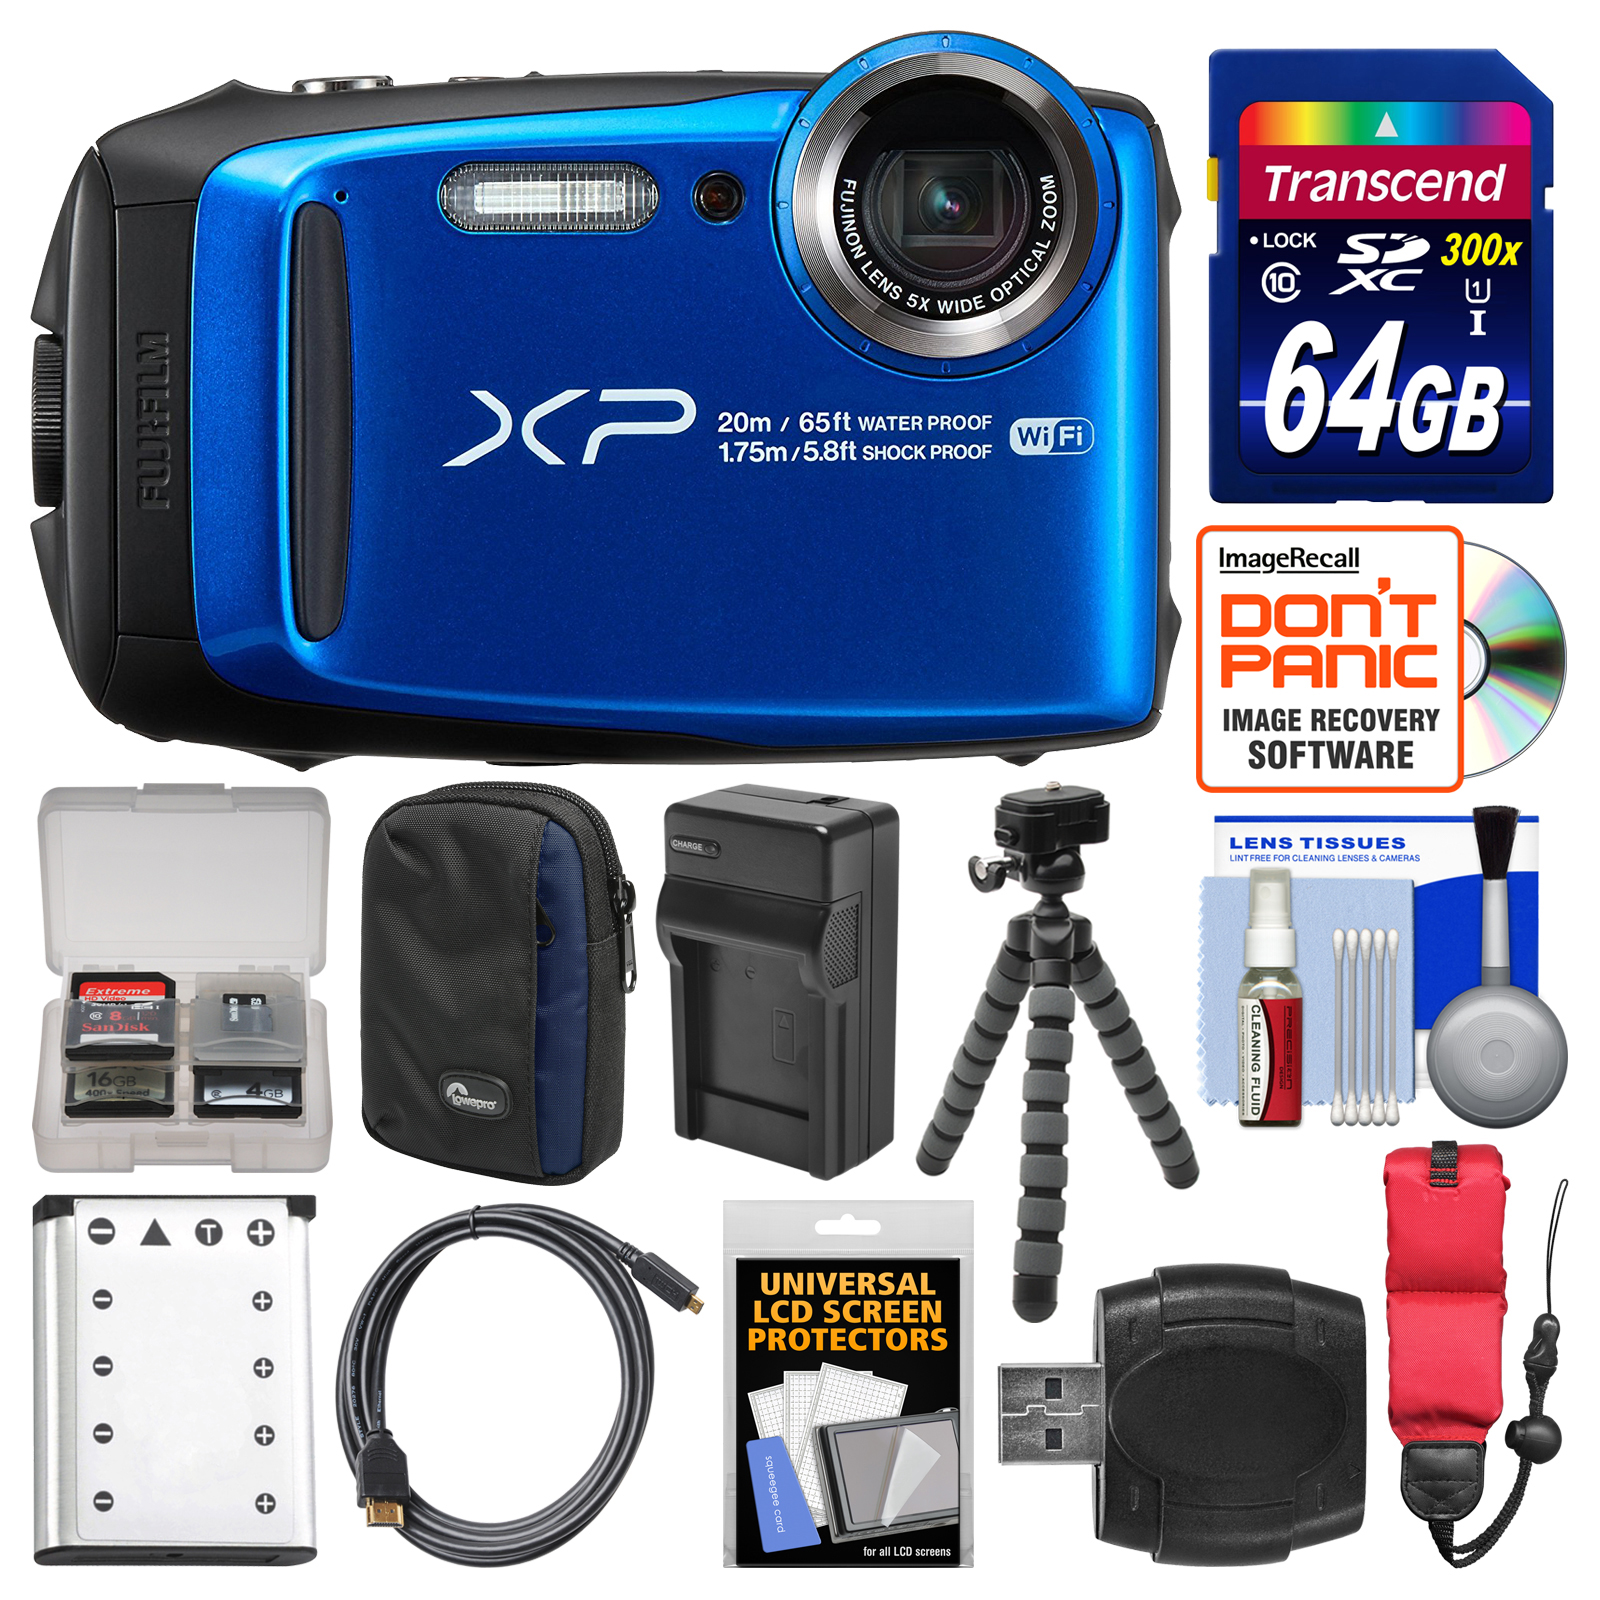 FujiFilm FinePix XP120 Shock & Waterproof Wi-Fi Digital Camera (Blue) with 64GB Card + Case + Battery + Charger + Tripod... by Fujifilm